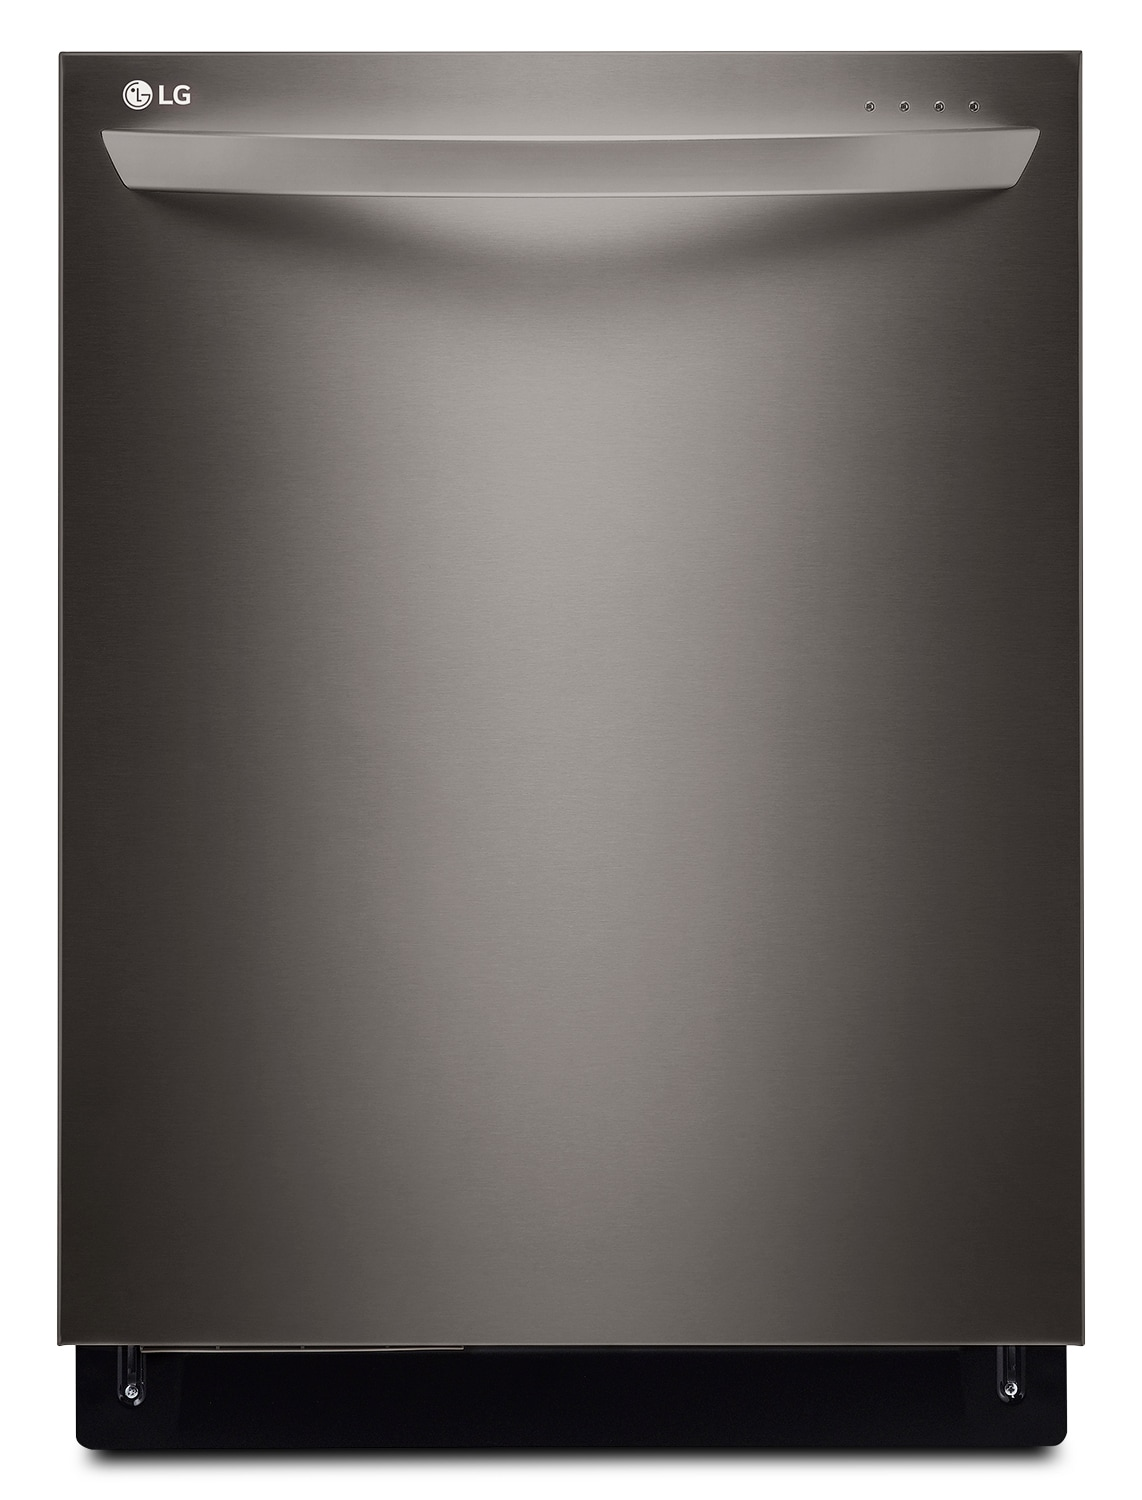 "Clean-Up - LG 23.75"" Built-In Dishwasher – Black Stainless Steel LDT9965BD"